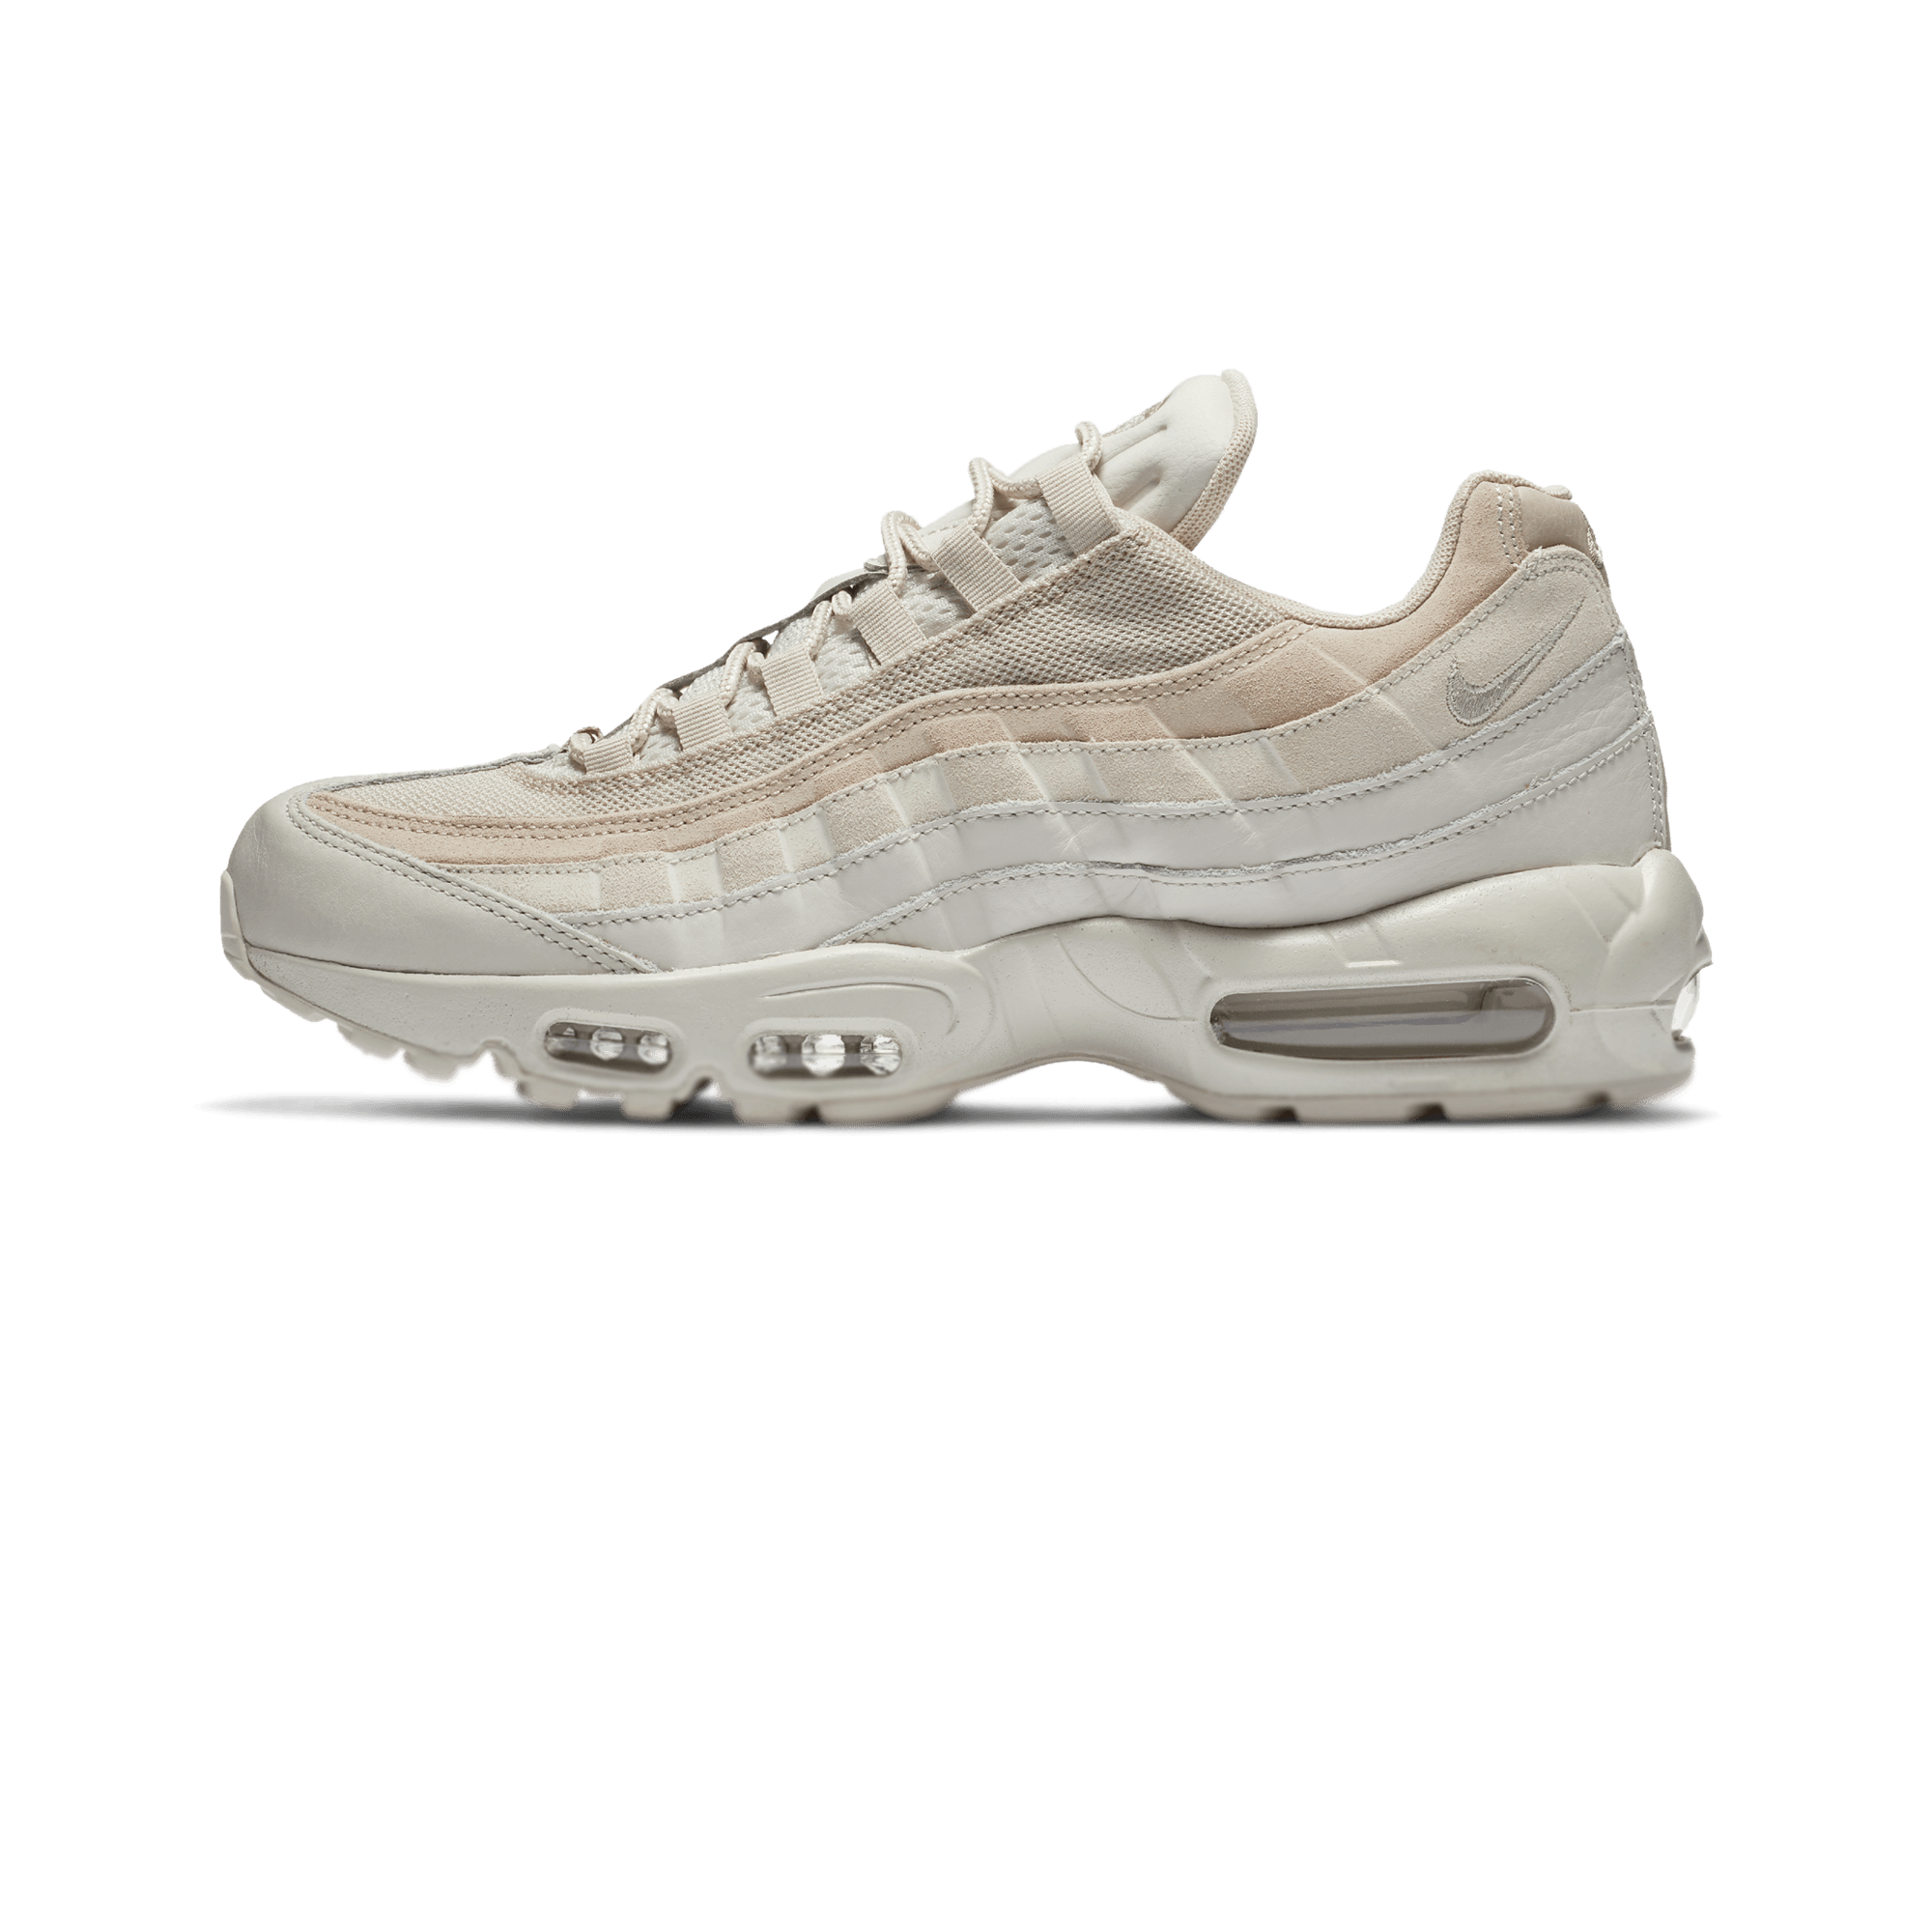 Nike Air Max 95 Premium light bonestring Men |